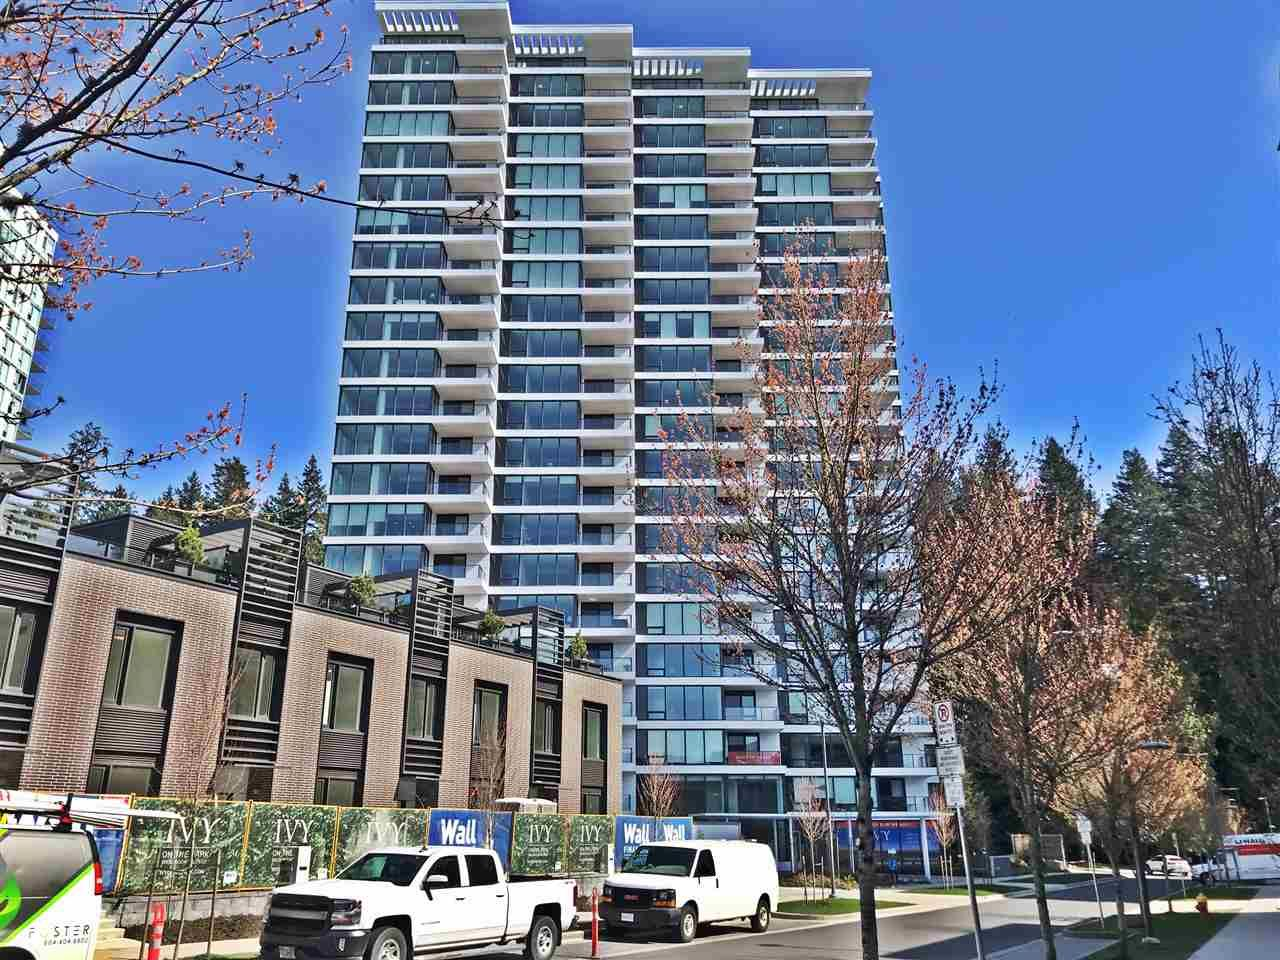 """Main Photo: 906 5629 BIRNEY Avenue in Vancouver: University VW Condo for sale in """"Ivy on the Park"""" (Vancouver West)  : MLS®# R2555747"""